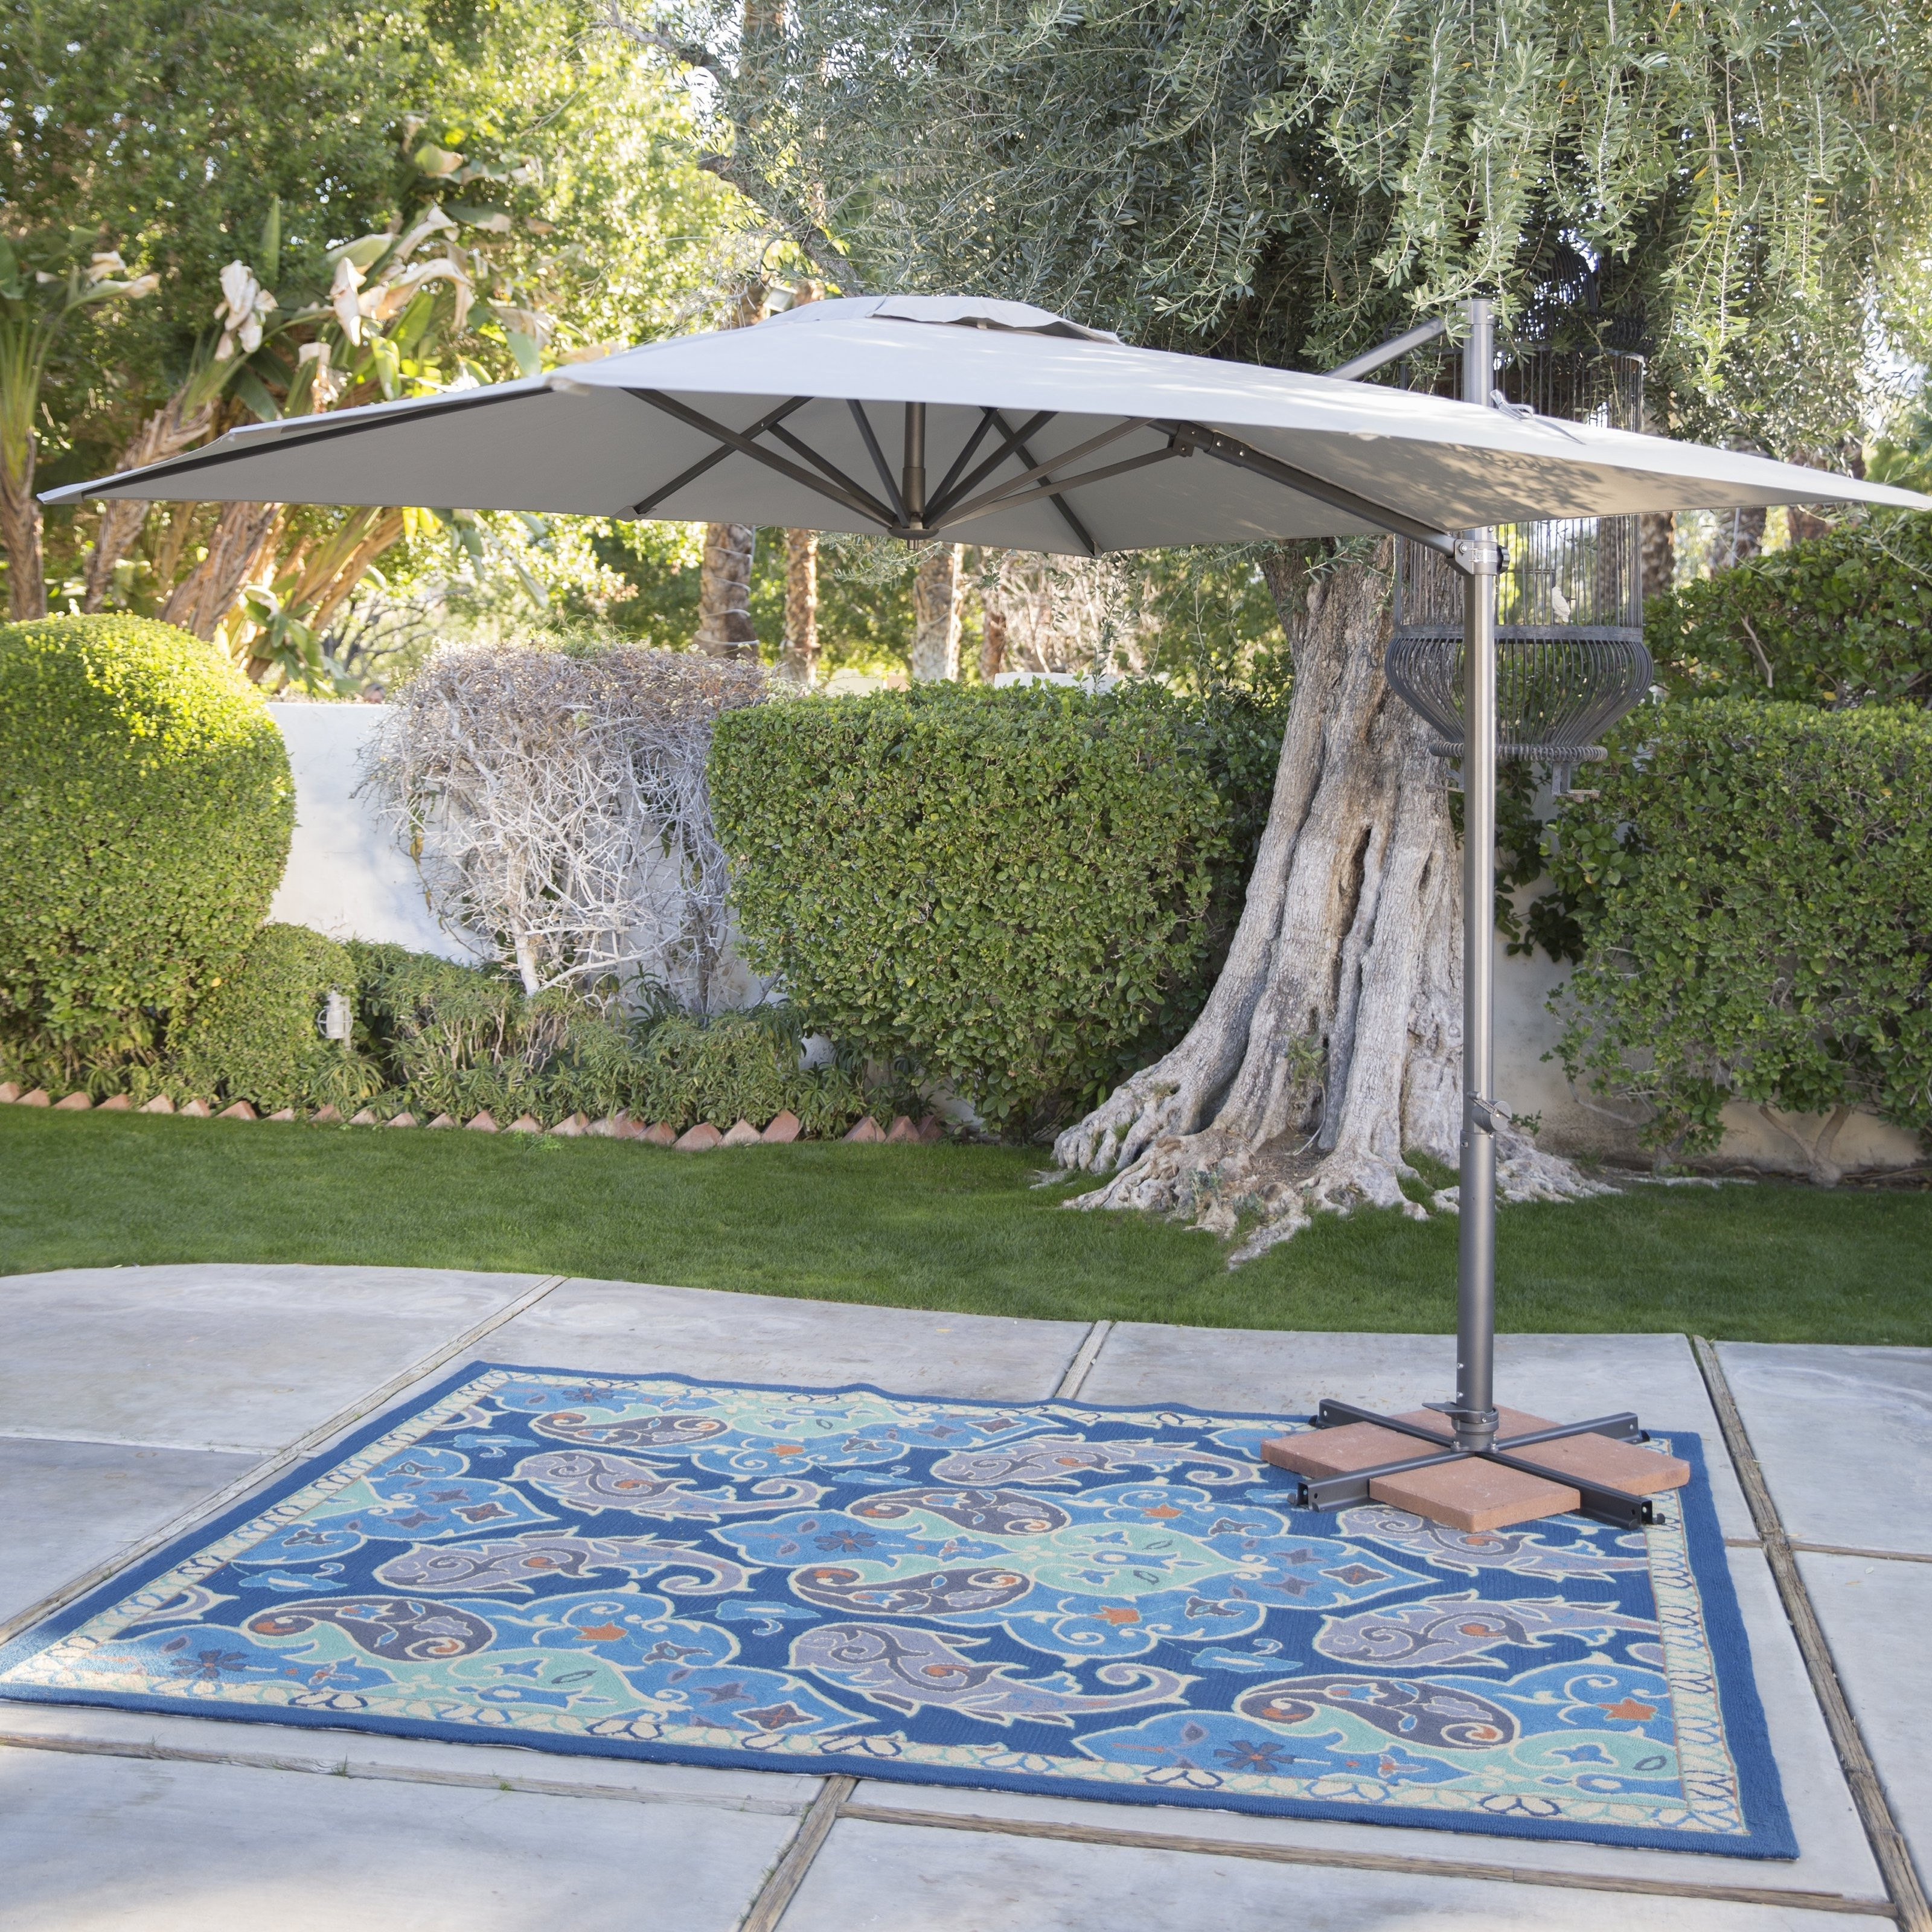 Current Patio Umbrella Covers Pertaining To Patio Umbrella Covers Best Of Patio Umbrella Covers Target Bd On (View 4 of 20)